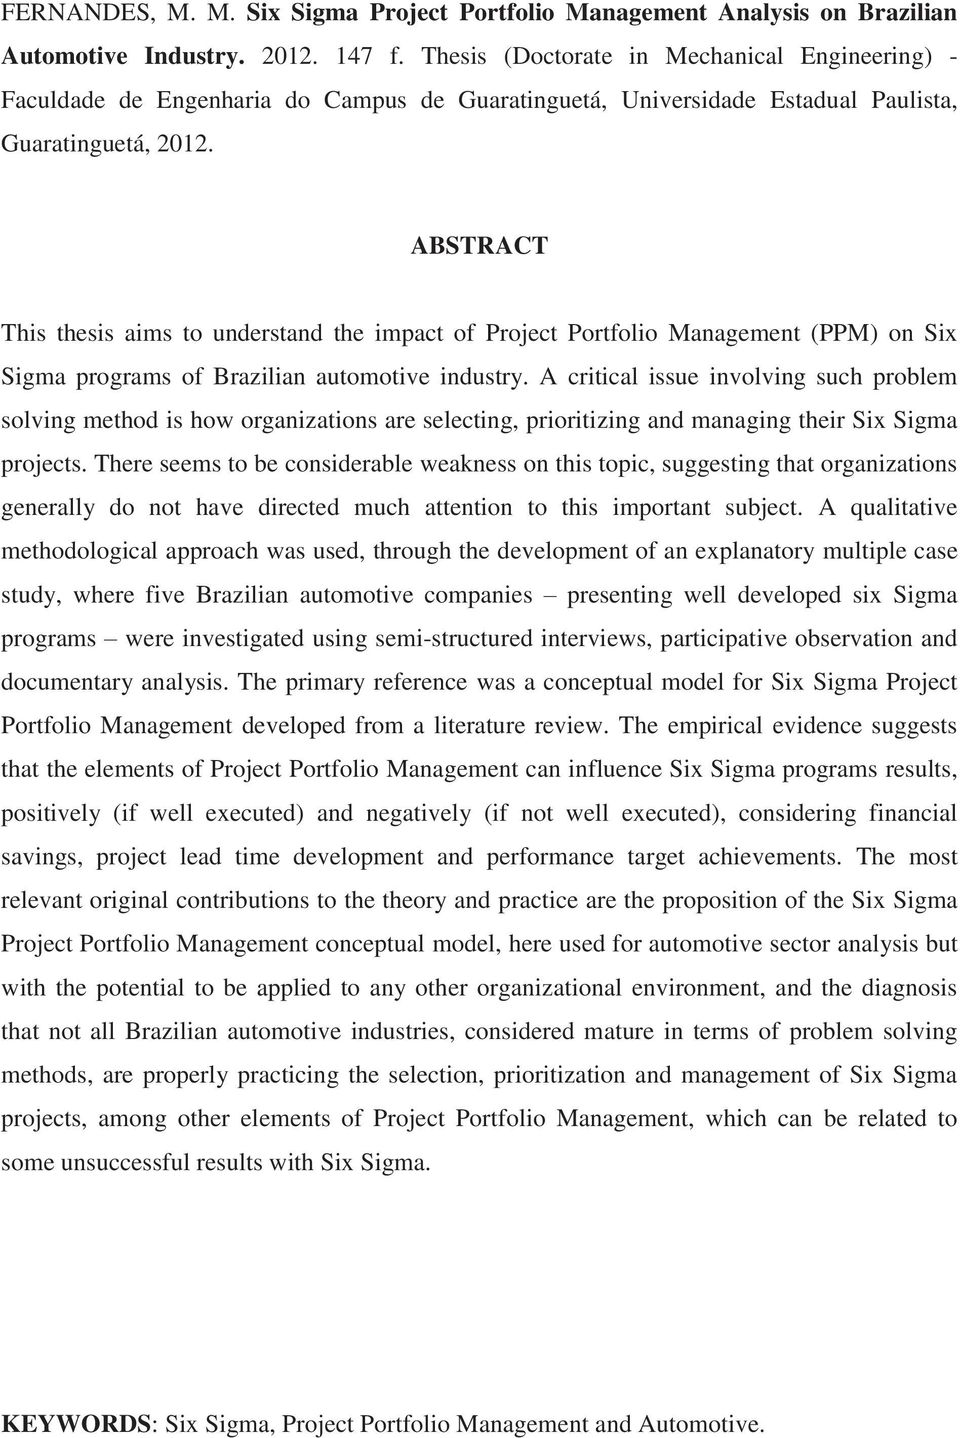 ABSTRACT This thesis aims to understand the impact of Project Portfolio Management (PPM) on Six Sigma programs of Brazilian automotive industry.